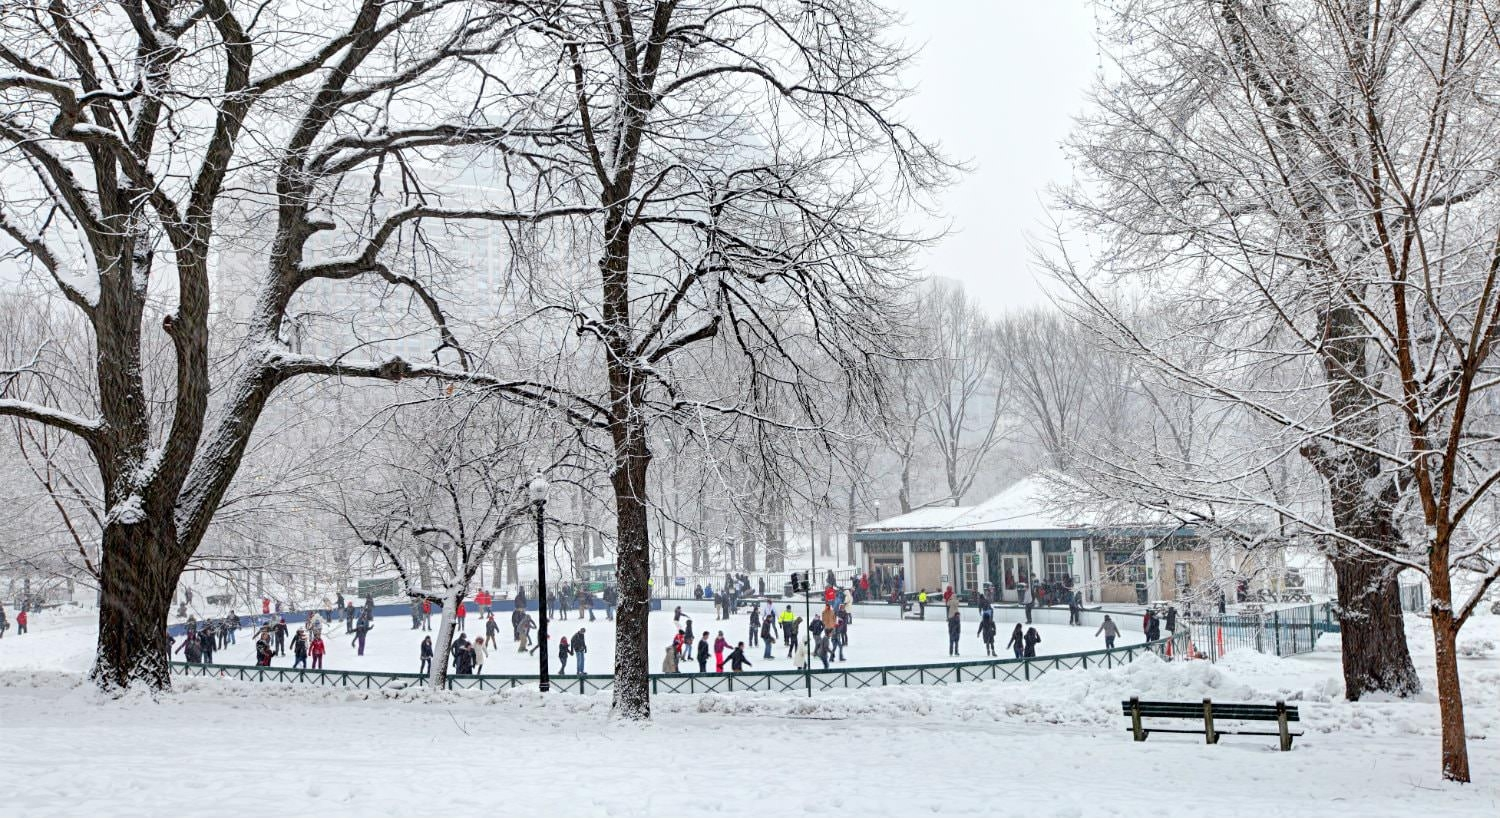 Group of people ice skating in a circular rink in a white snow-covered park surrounded by trees